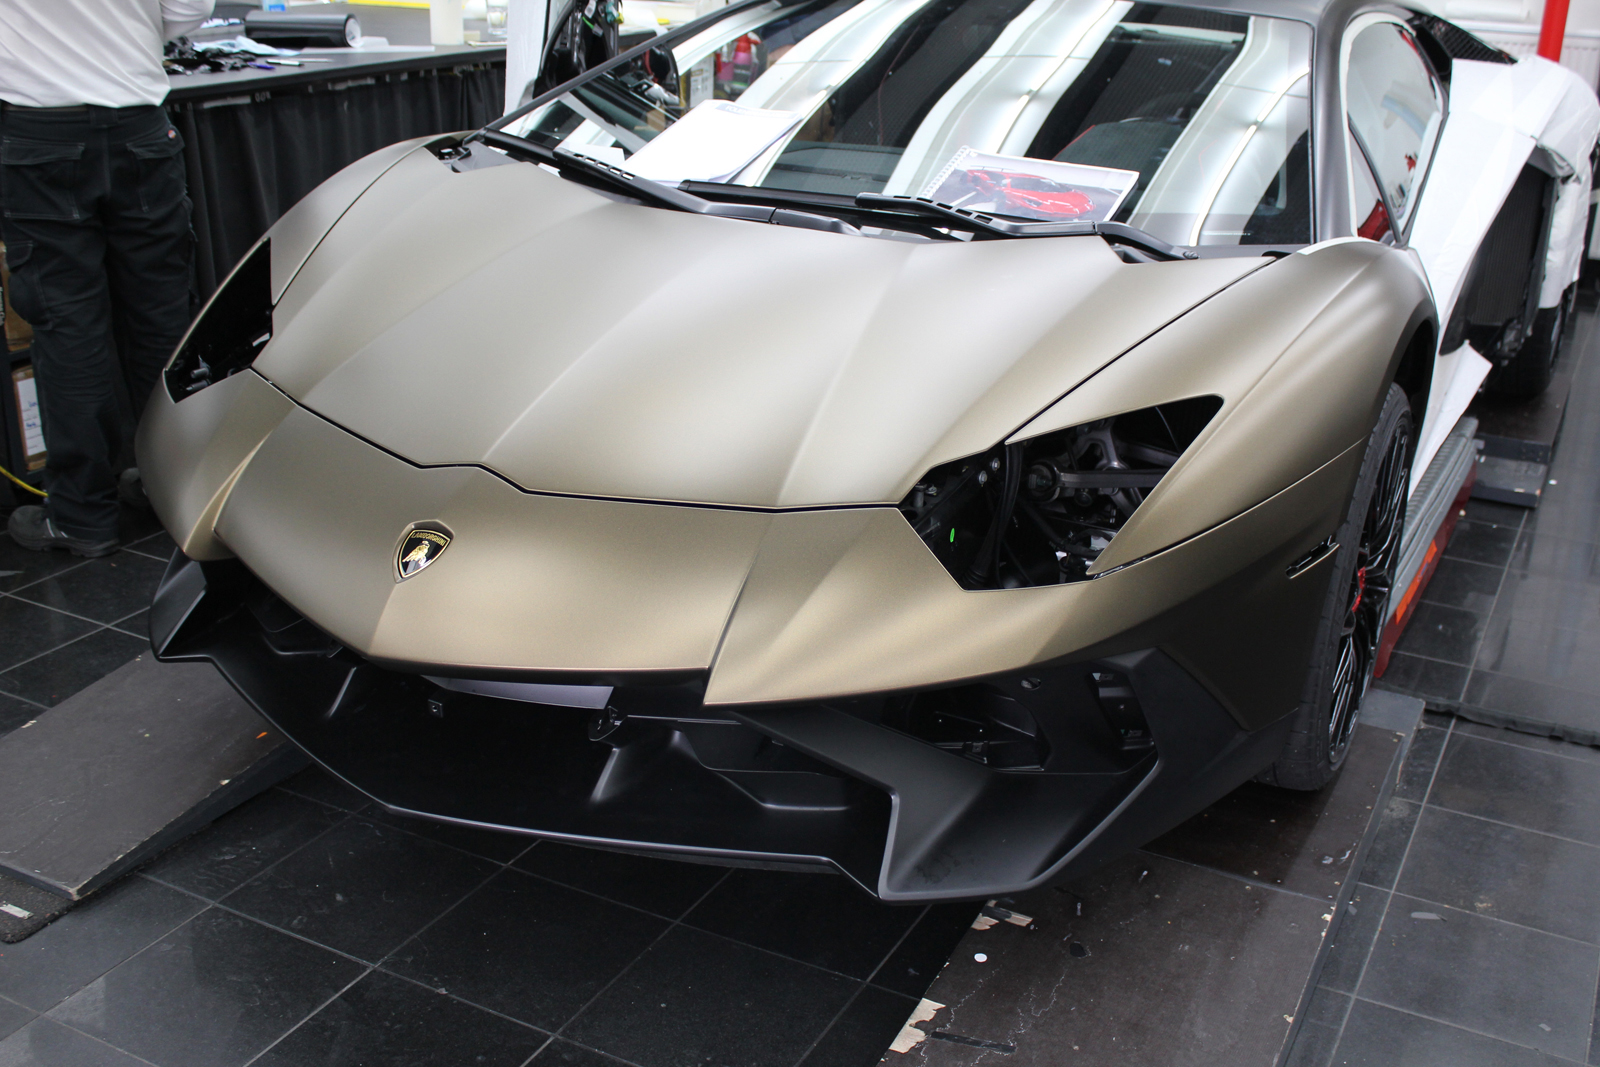 LAMBORGHINI_AVENTADOR_SV_CAR-WRAPPING_BOND_GOLD_02